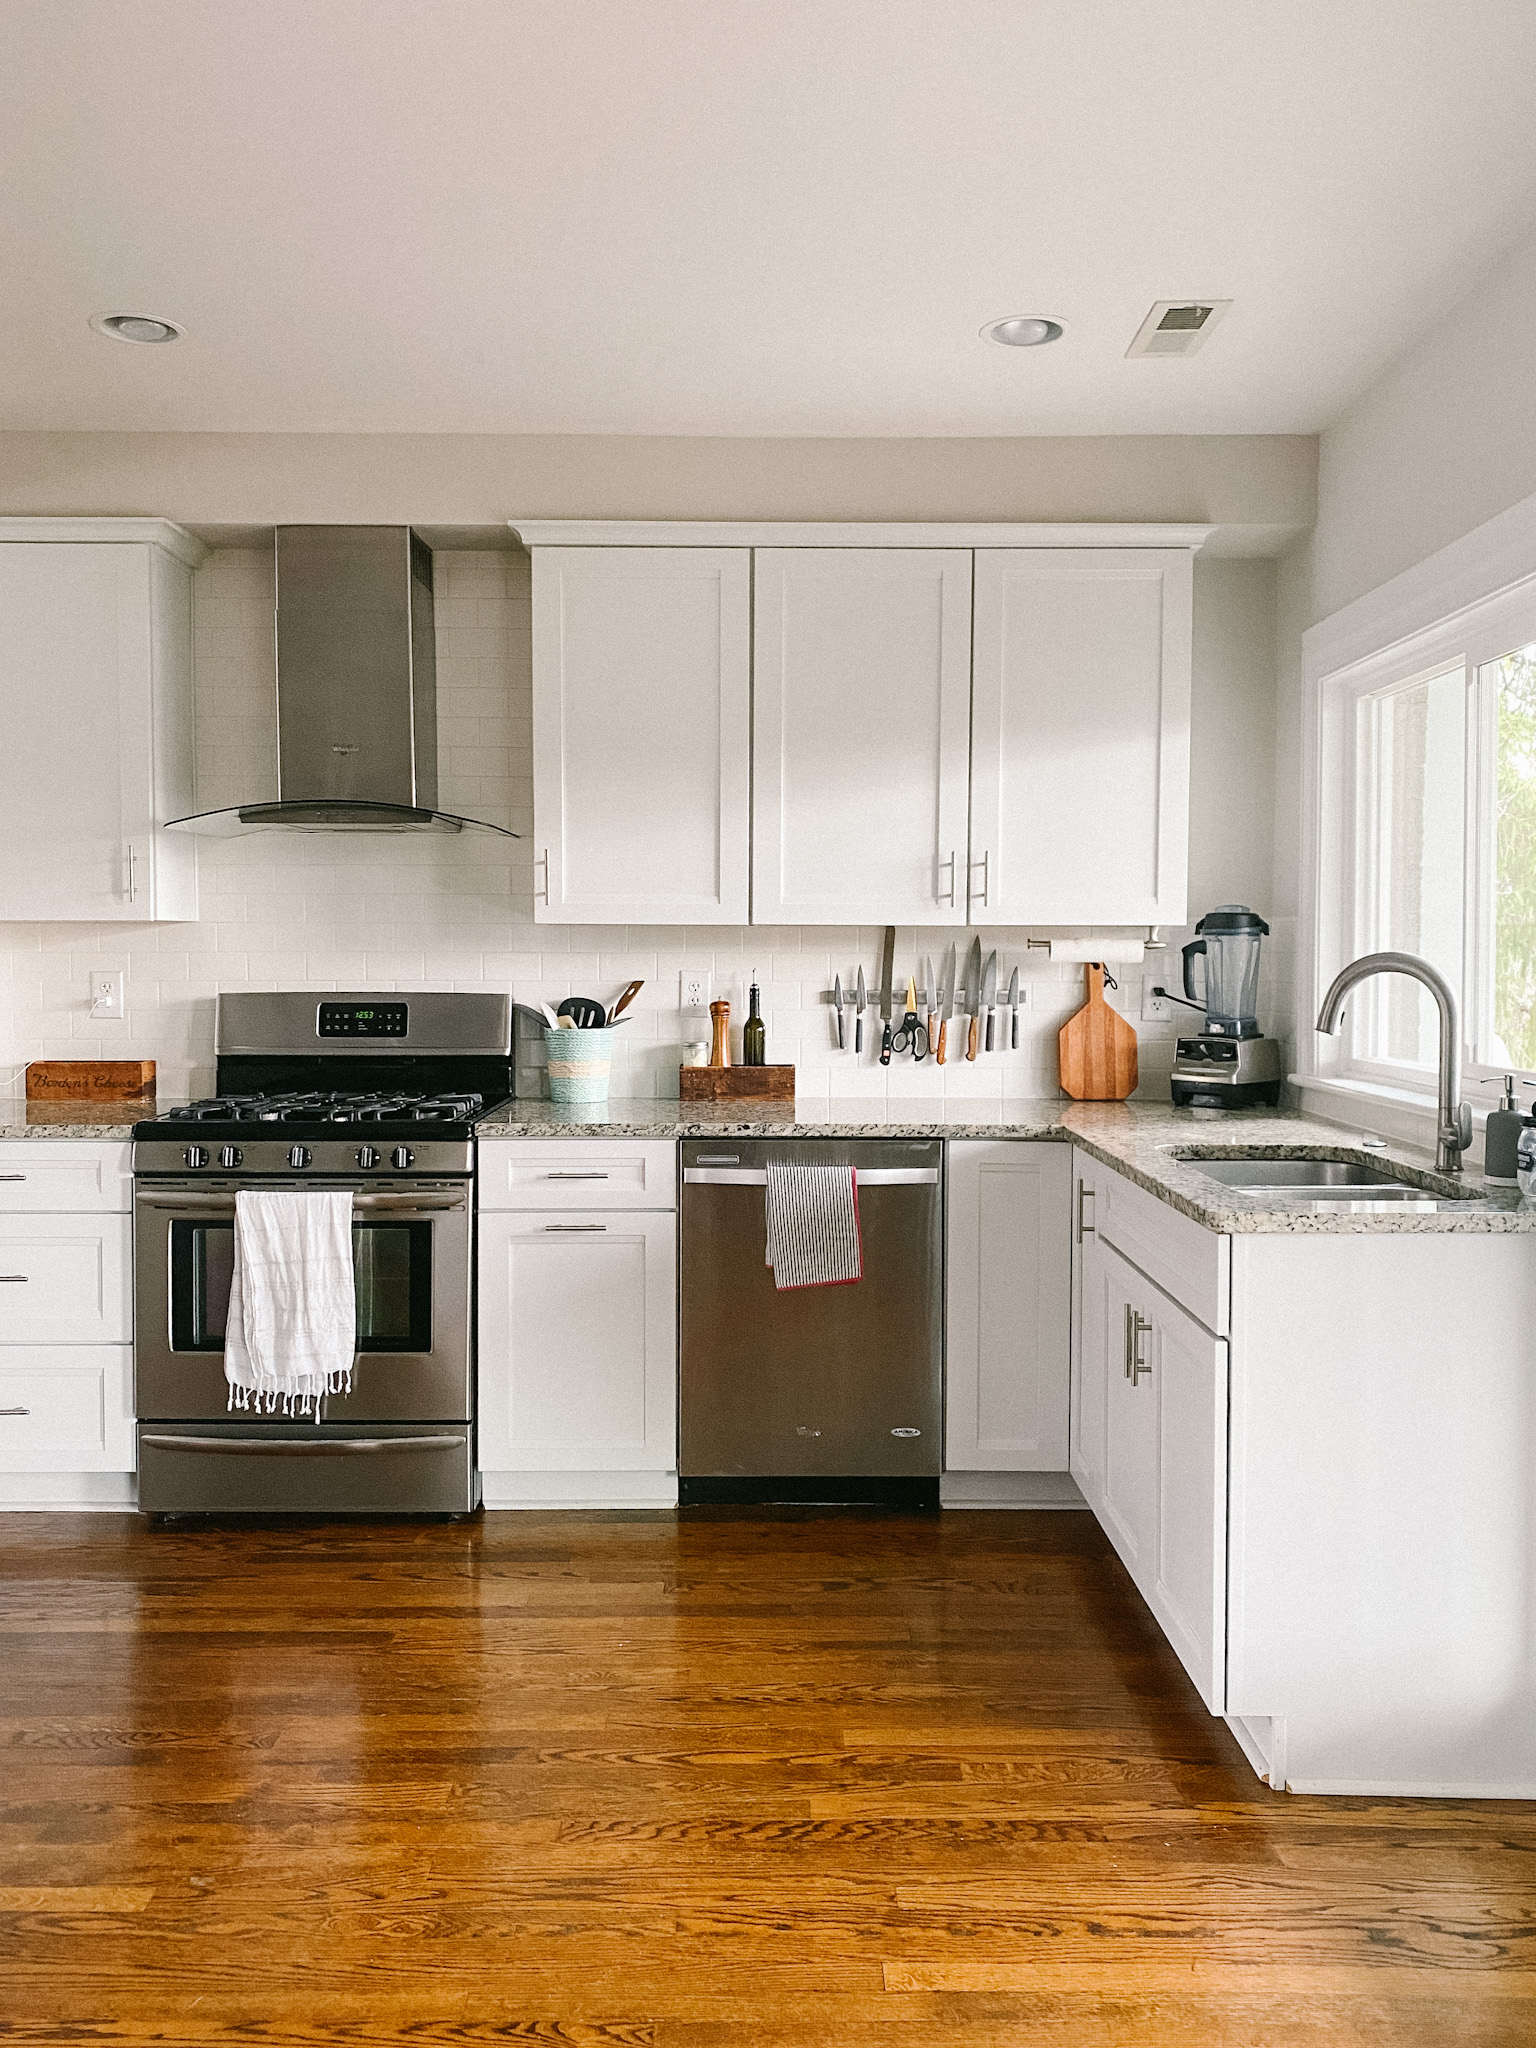 How to declutter your kitchen in 5 steps for a simple kitchen